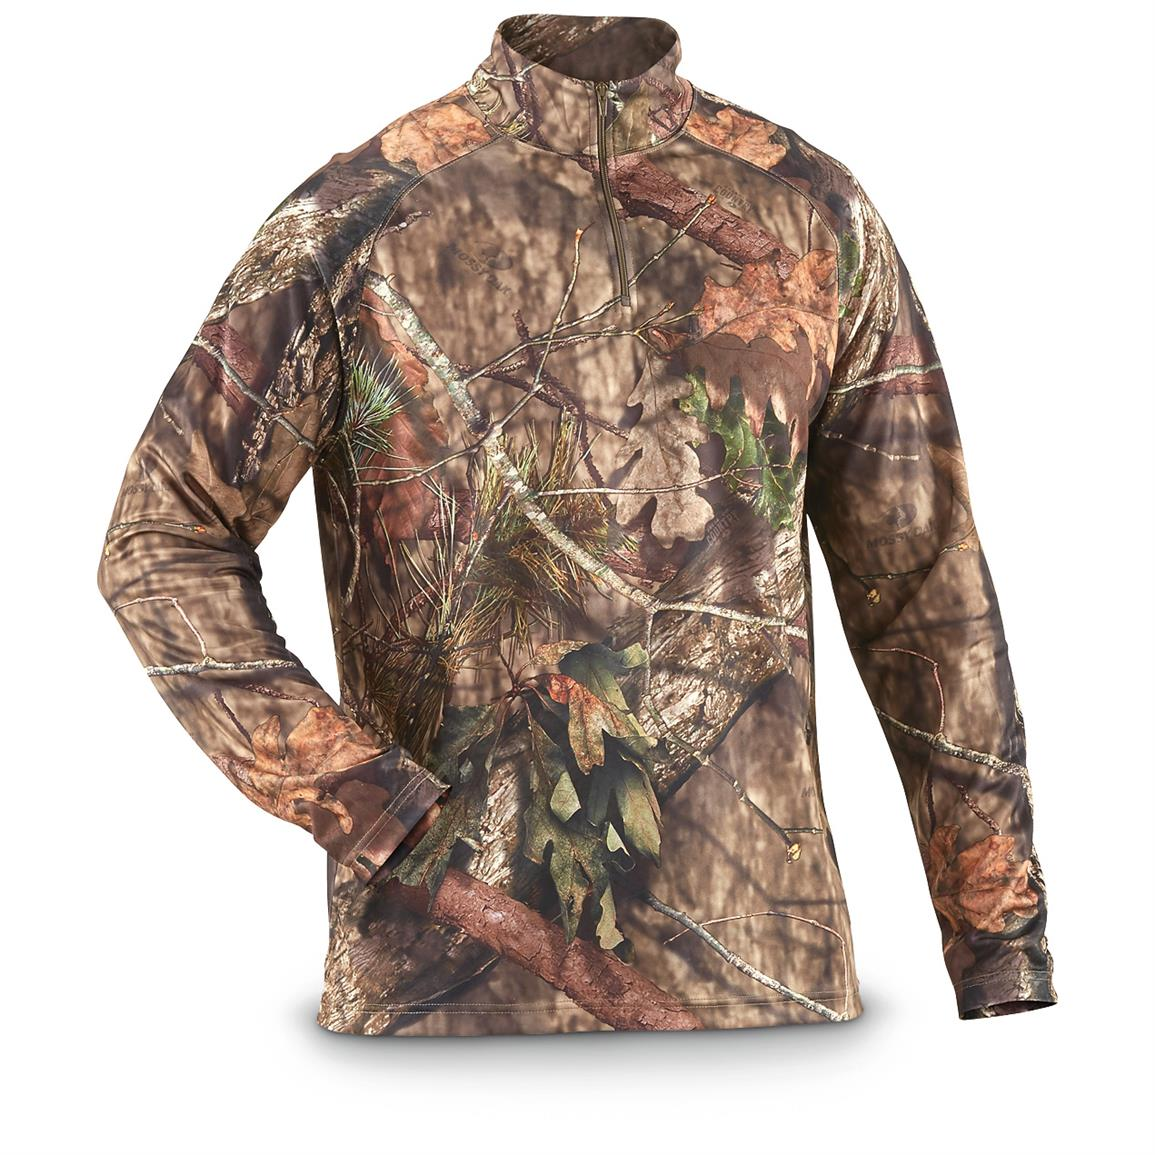 Guide Gear Men's Performance Hunting Camo 1/4 Zip Shirt, Mossy Oak Break-Up Country